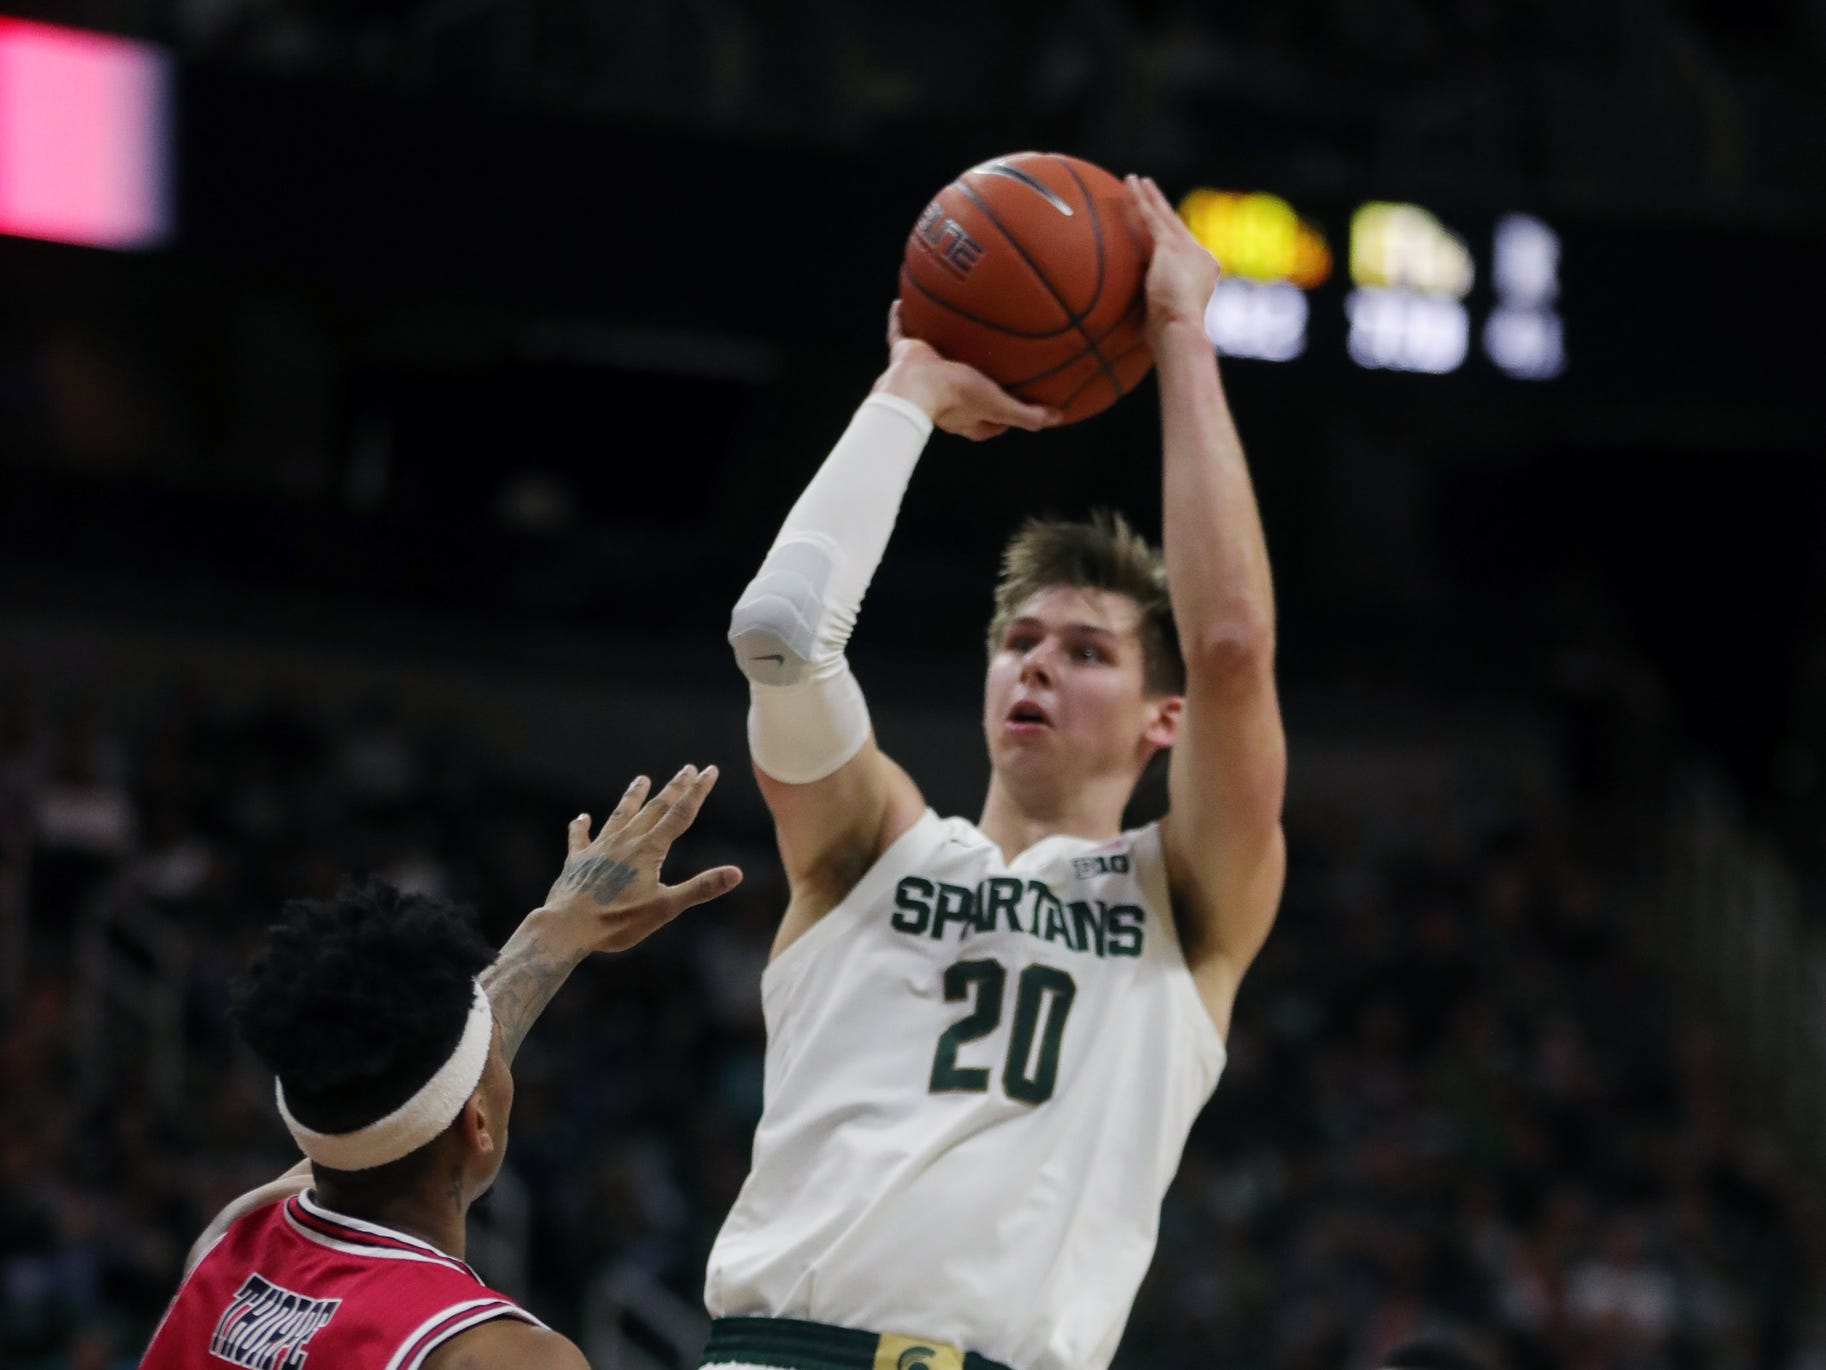 Michigan State guard Matt McQuaid scores against Northern Illinois guard Dante Thorpe during the second half Saturday, Dec. 29, 2018 at the Breslin Center in East Lansing.